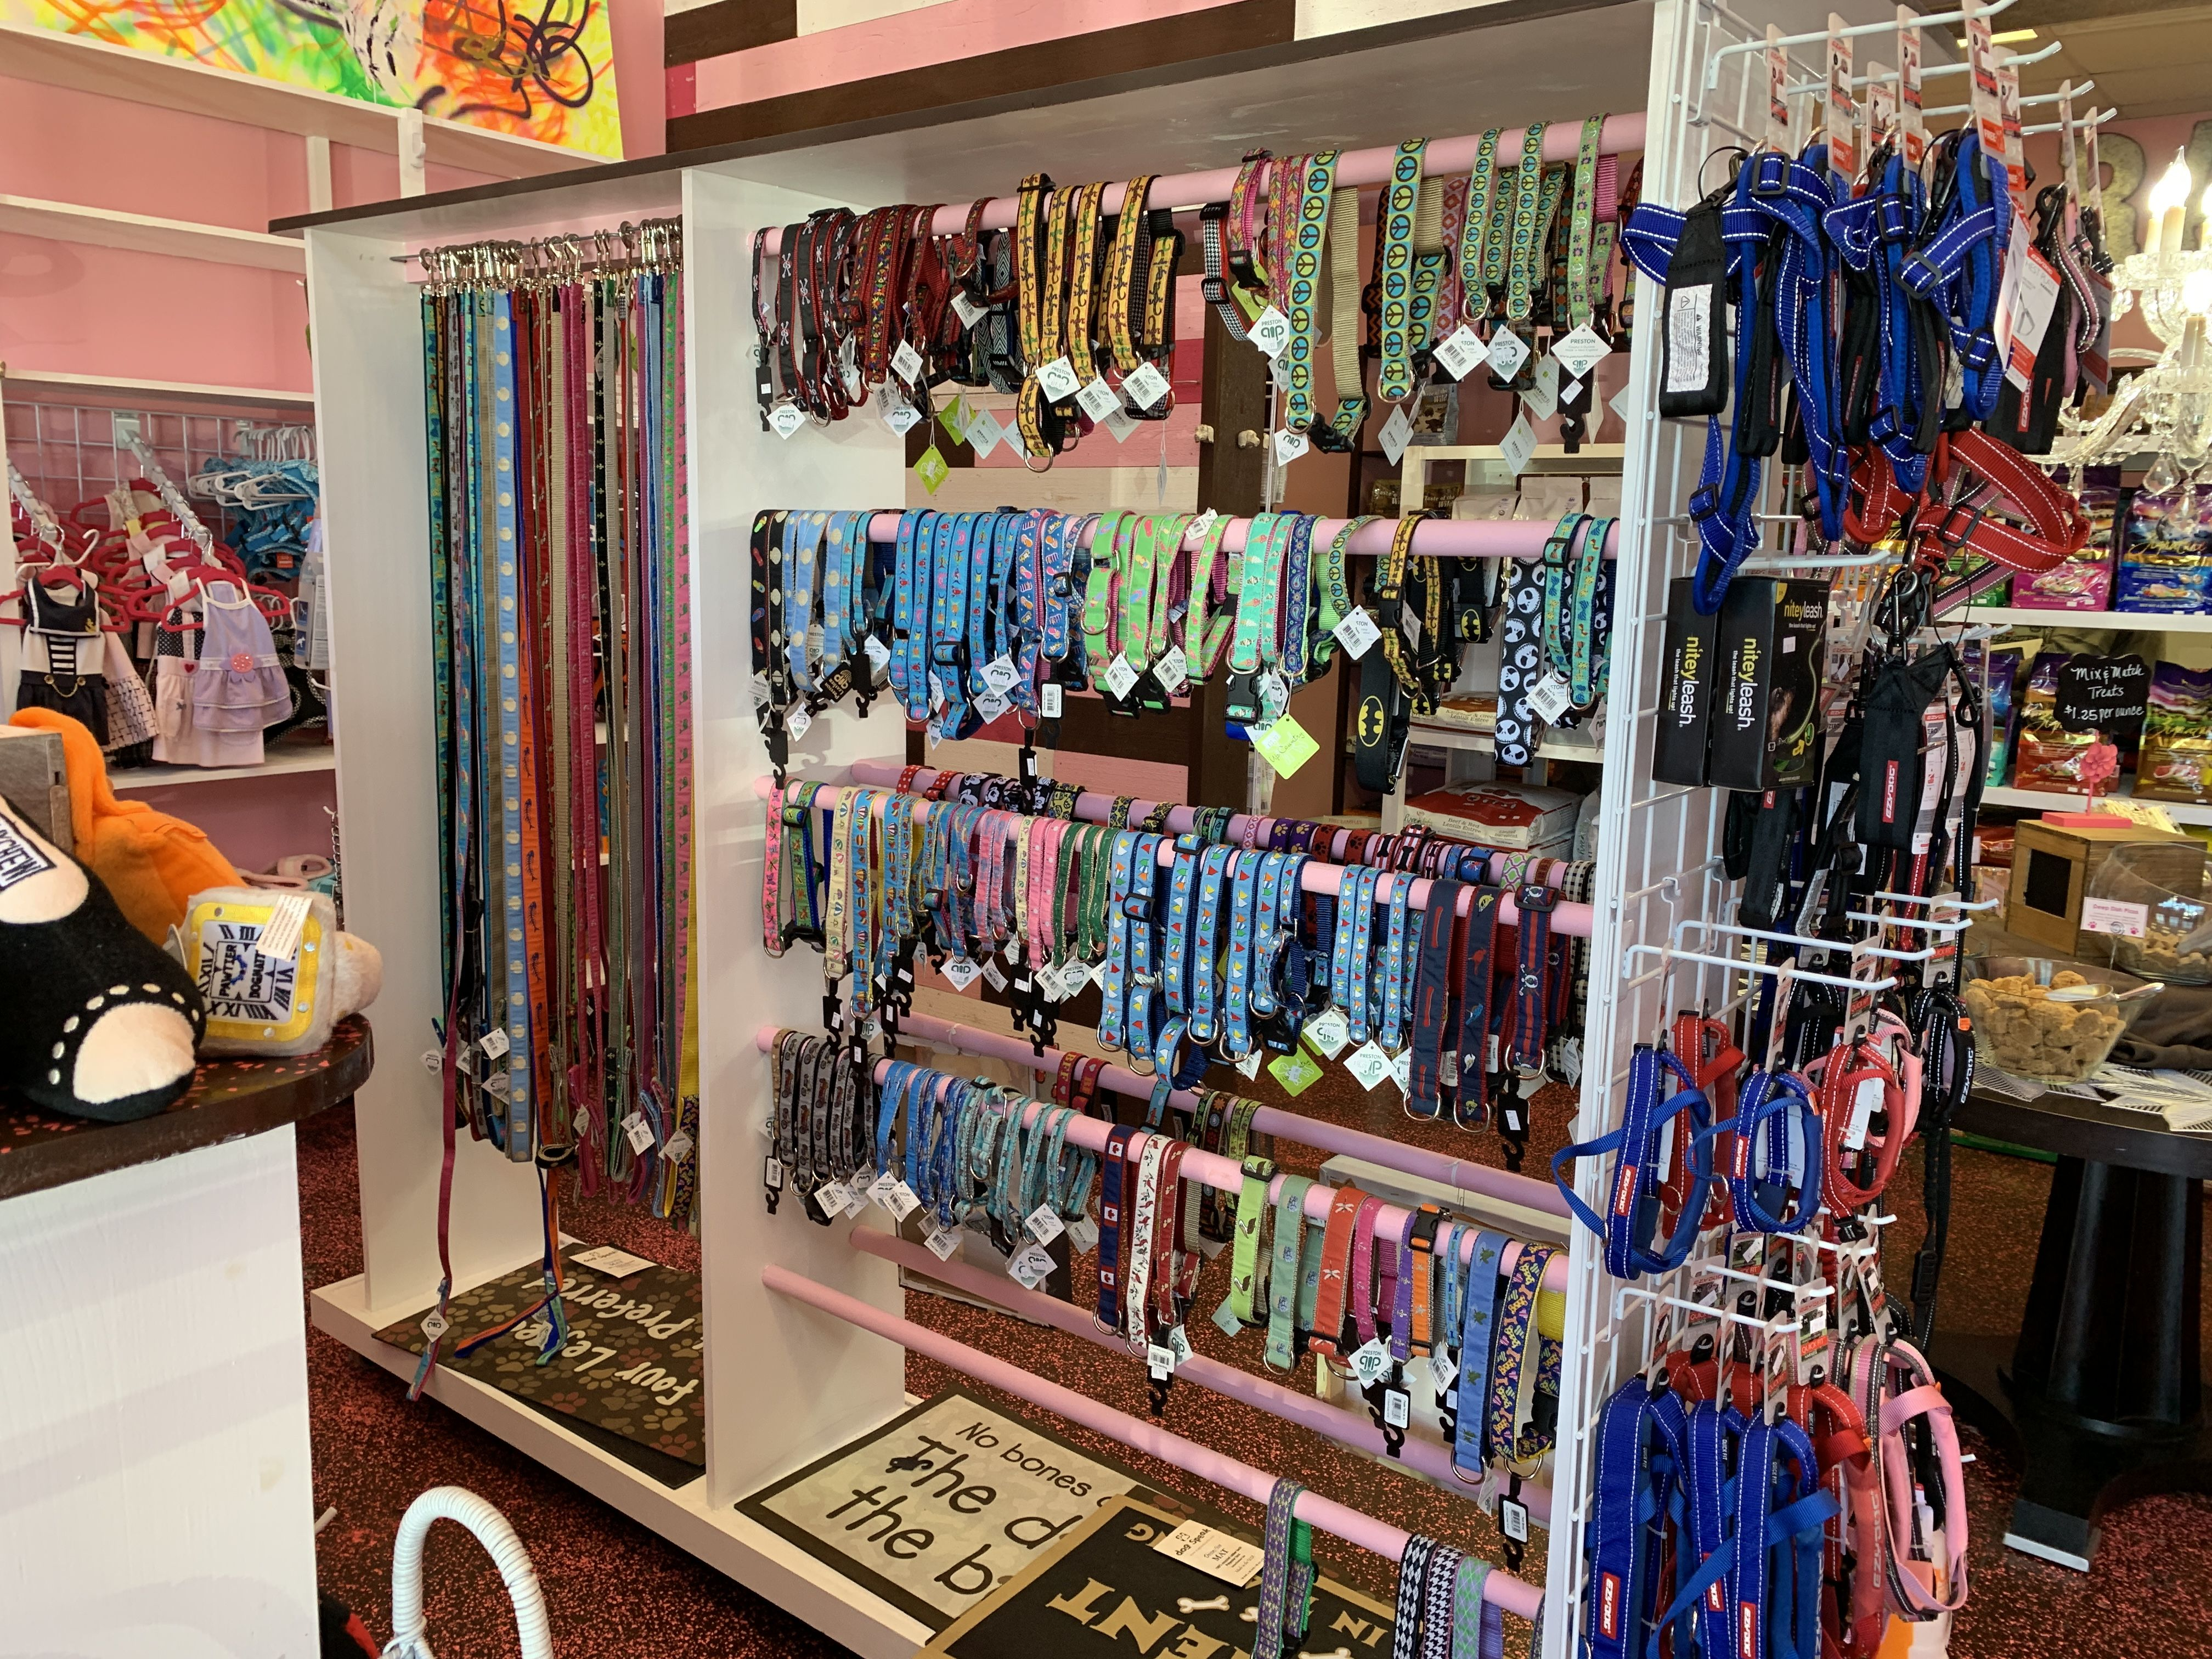 Woof Gang Bakery Jacksonville, FL have the accessories that gets those tails wagging!! Home